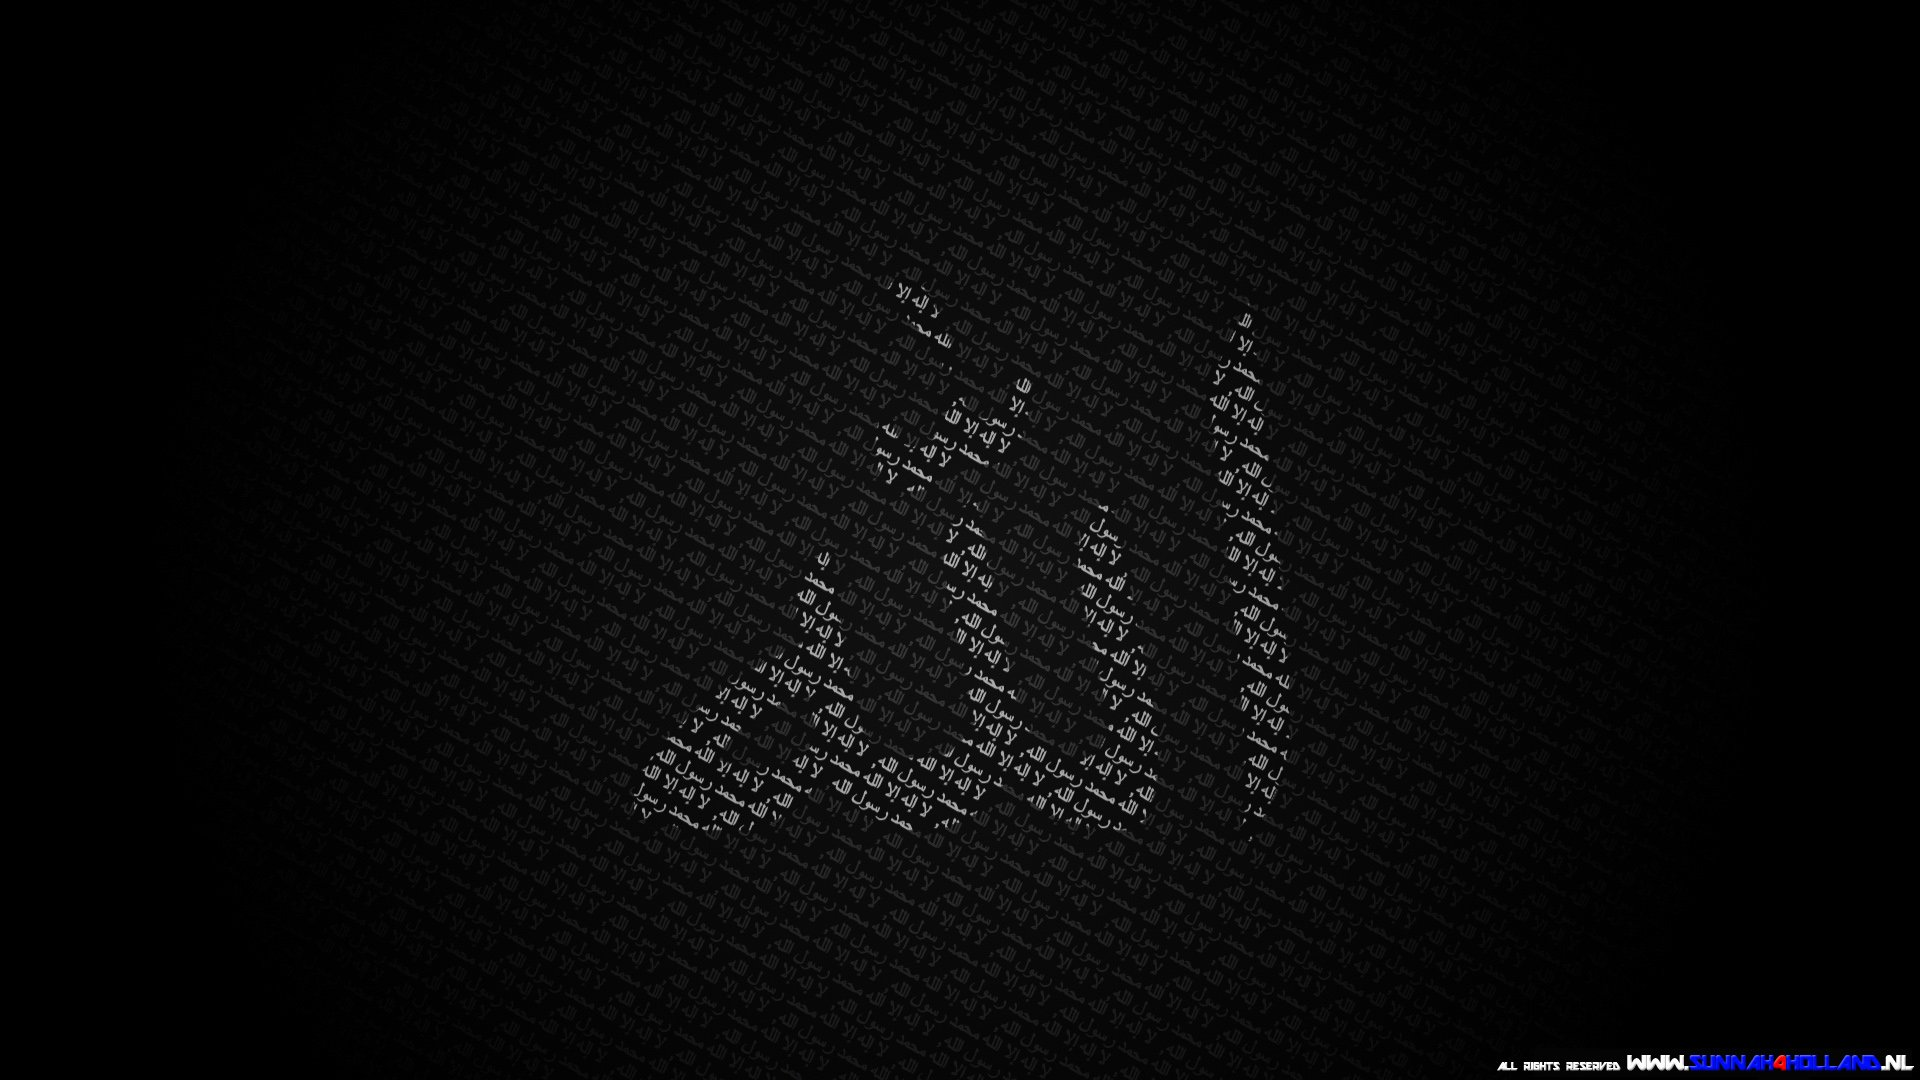 Full HD Islamic Wallpapers 1920x1080 - WallpaperSafari